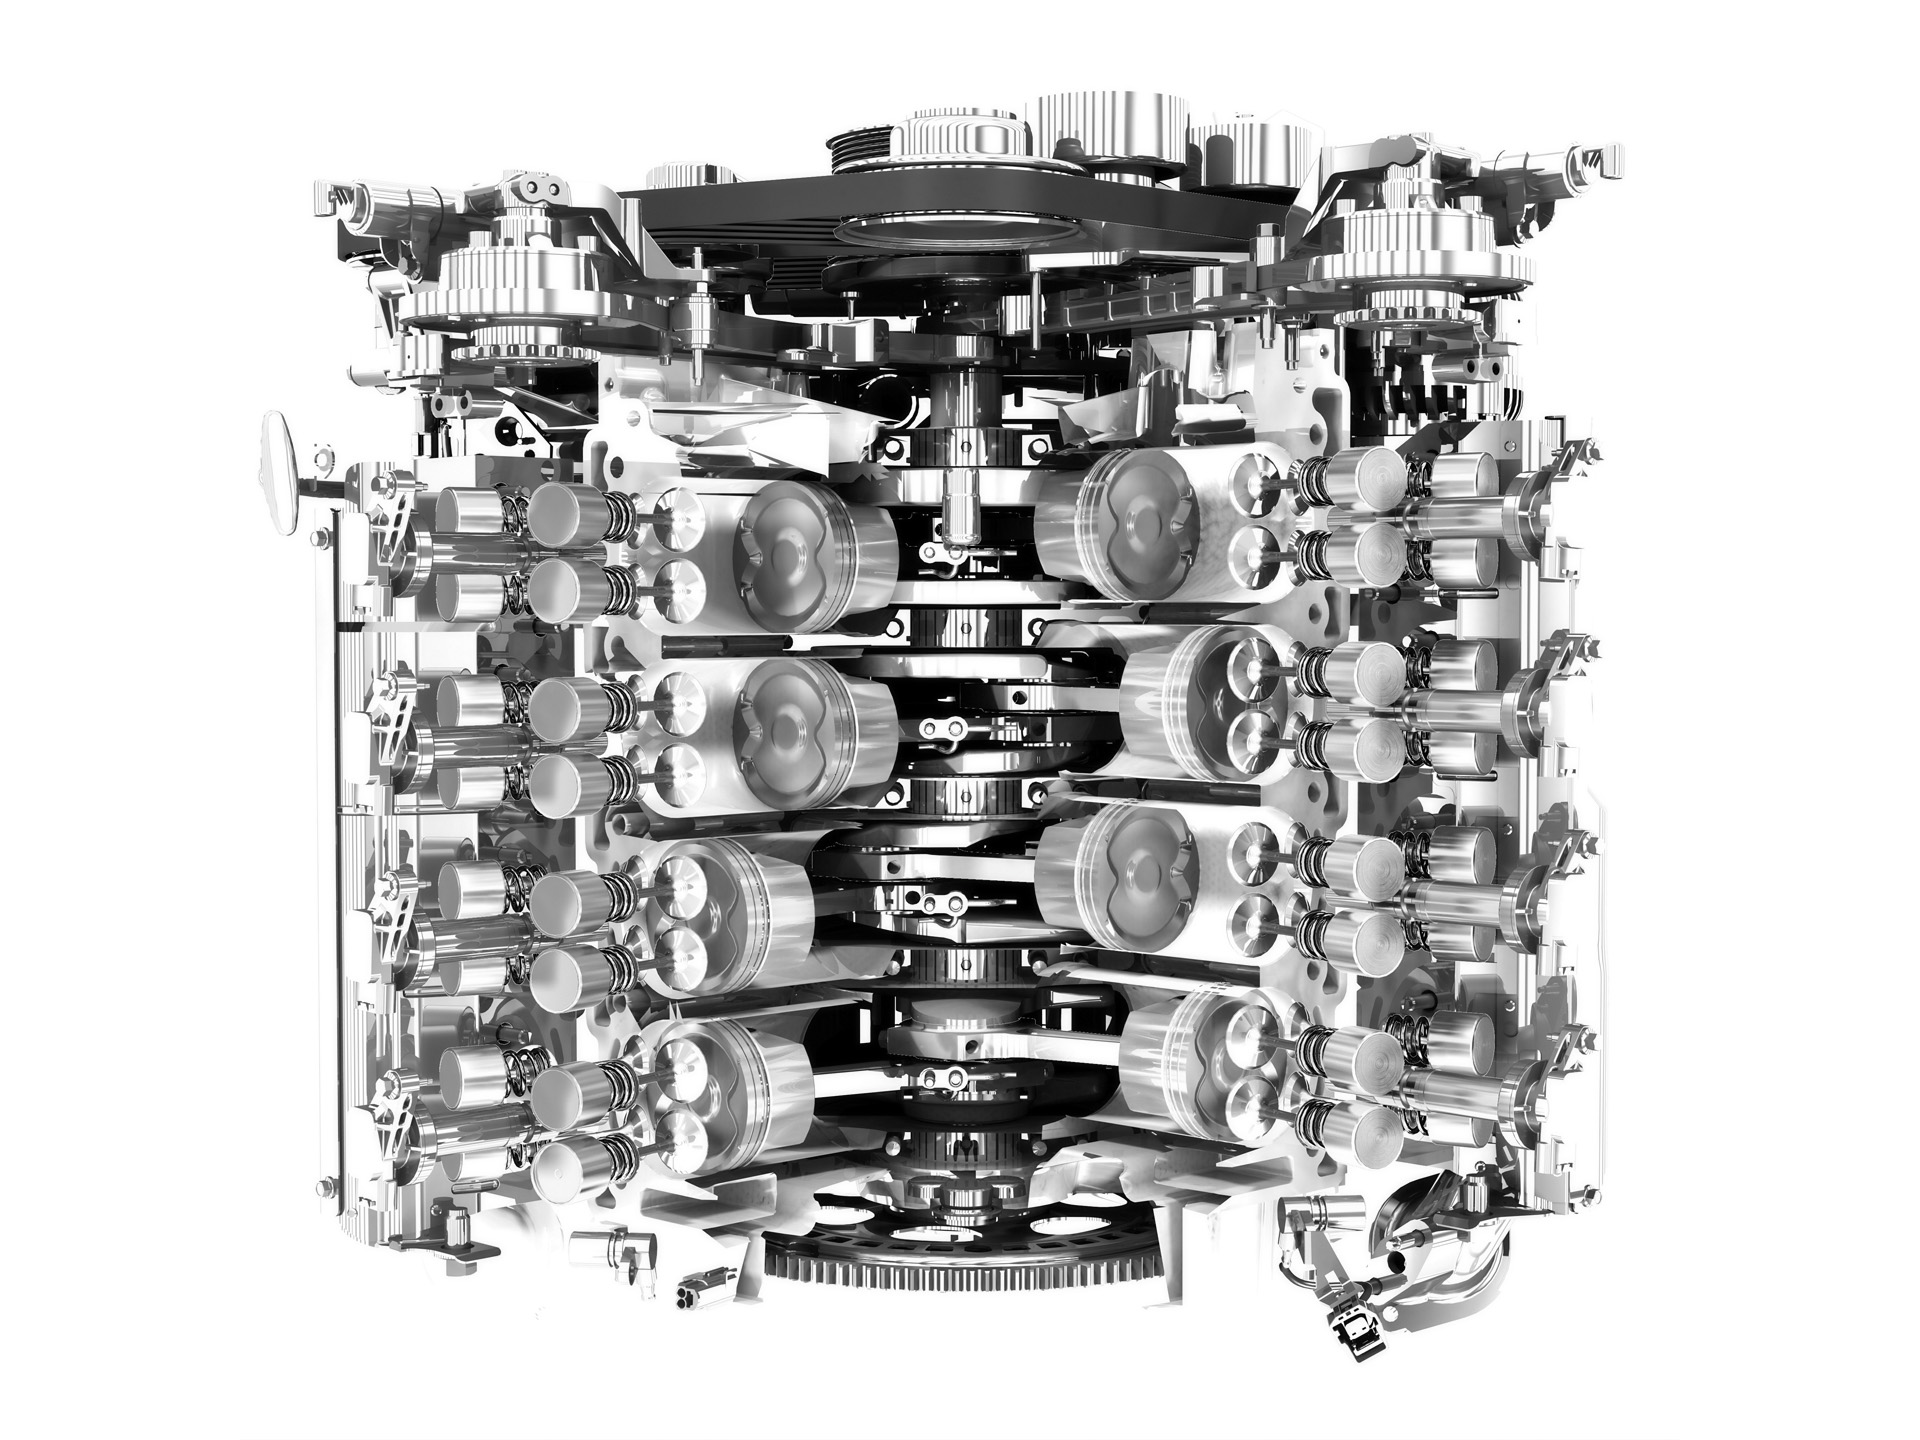 Sample P1154 Engine